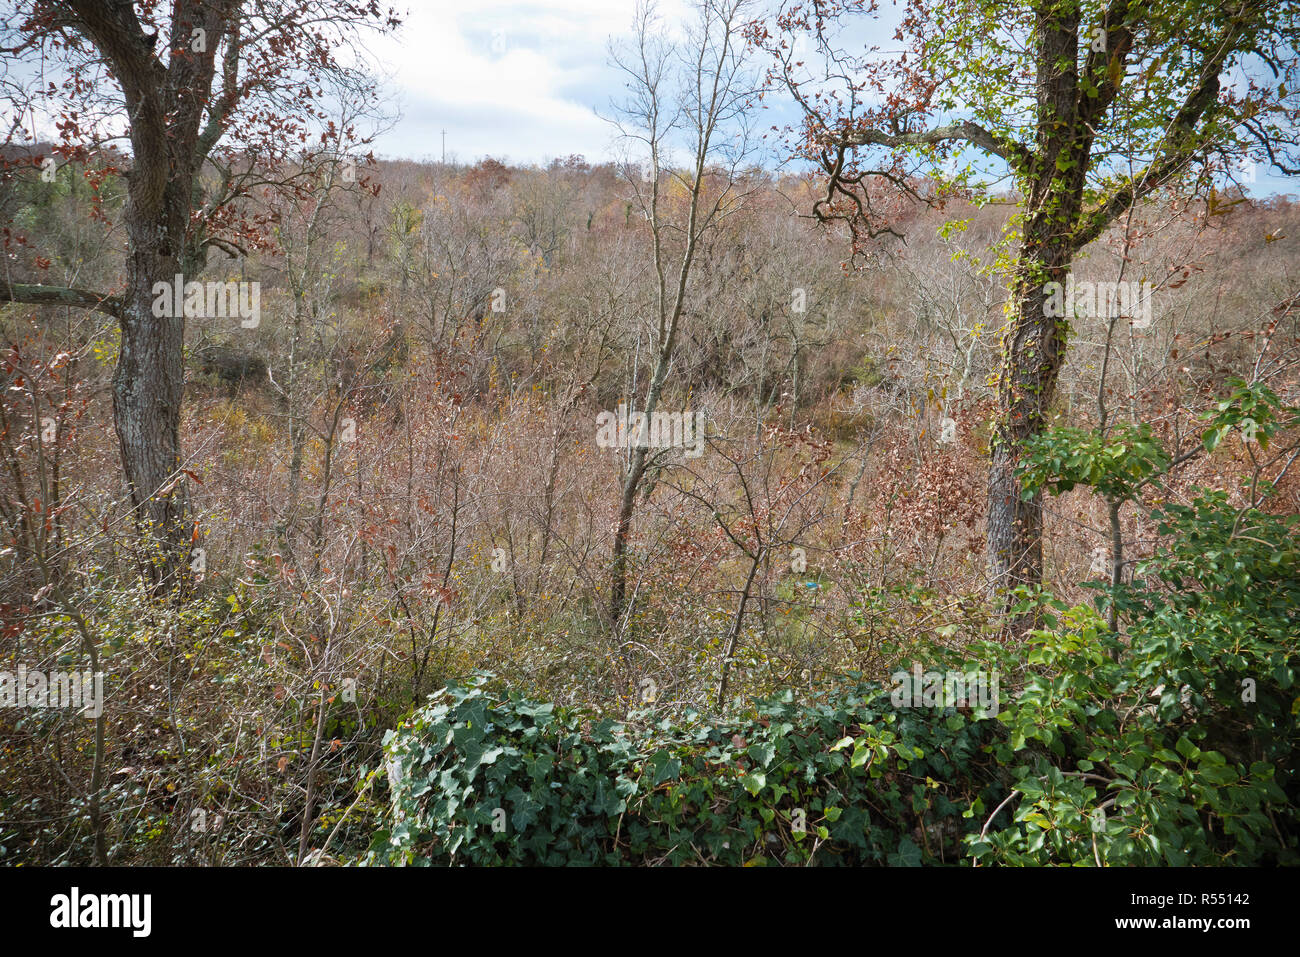 Murgia oaks forest in the morning of autumn - Stock Image